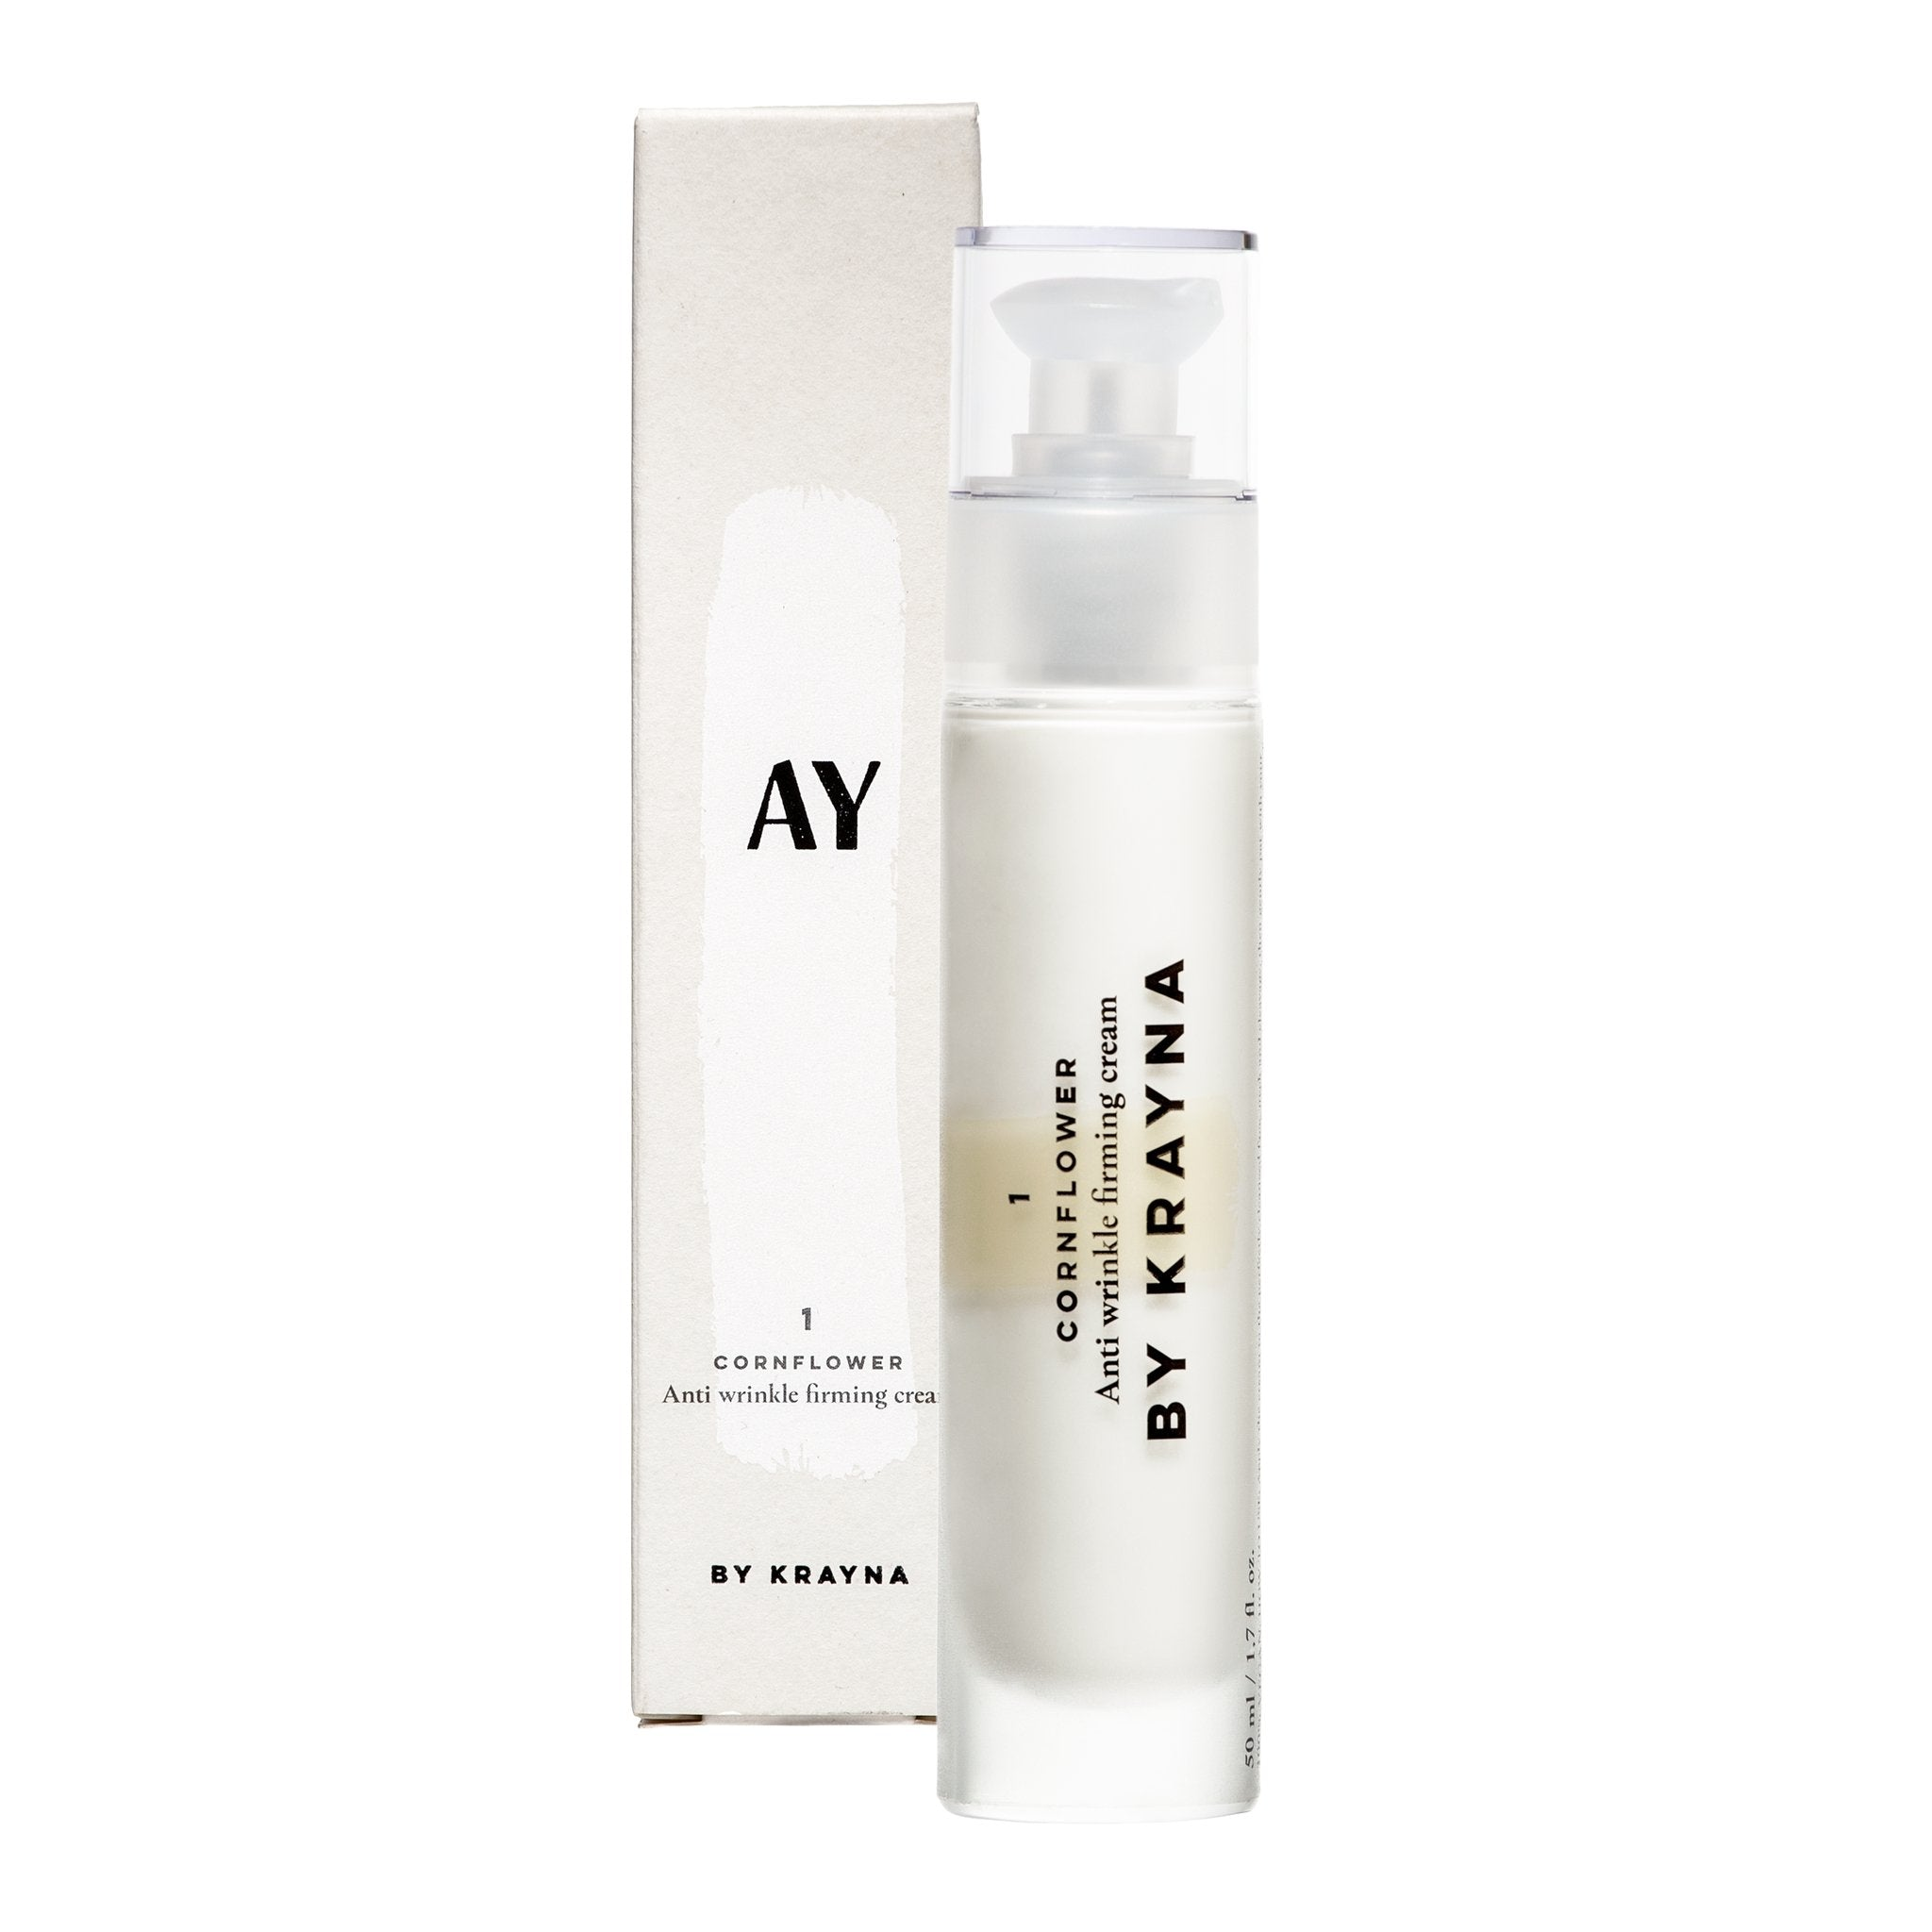 Krayna Krem AY 1 Cornflower 50ml - Vesa Beauty